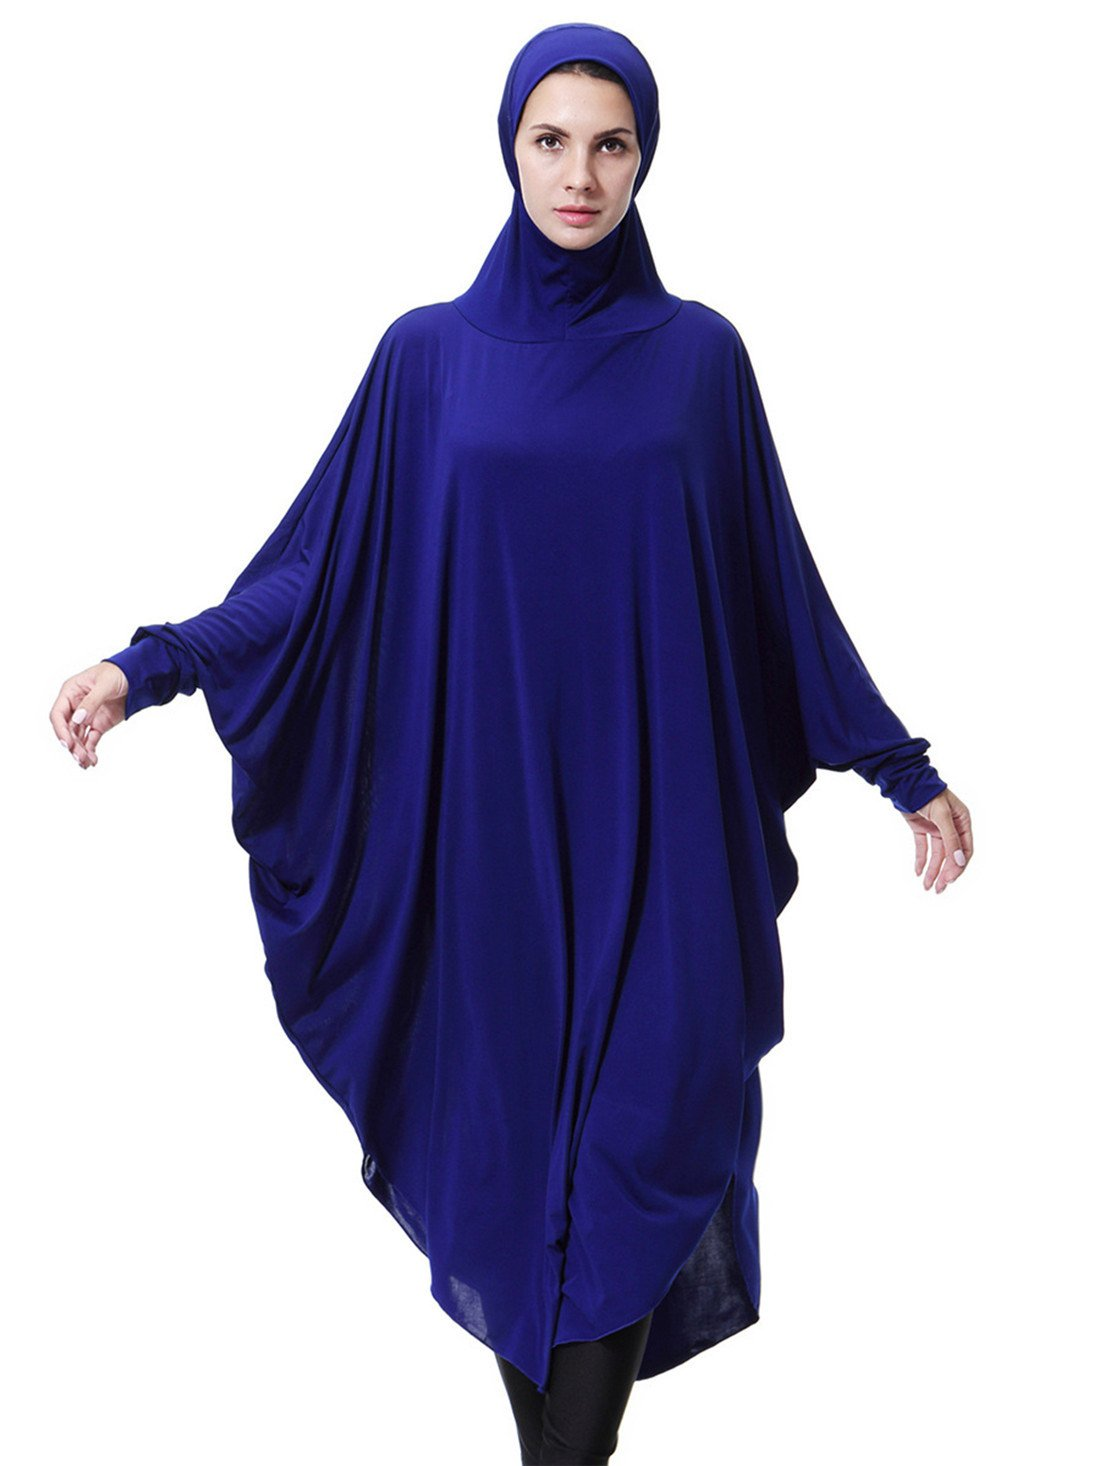 GladThink Womens Muslim Bat's-wing-sleeves Dress Hijab Two in One XL MSL-HS110-XL